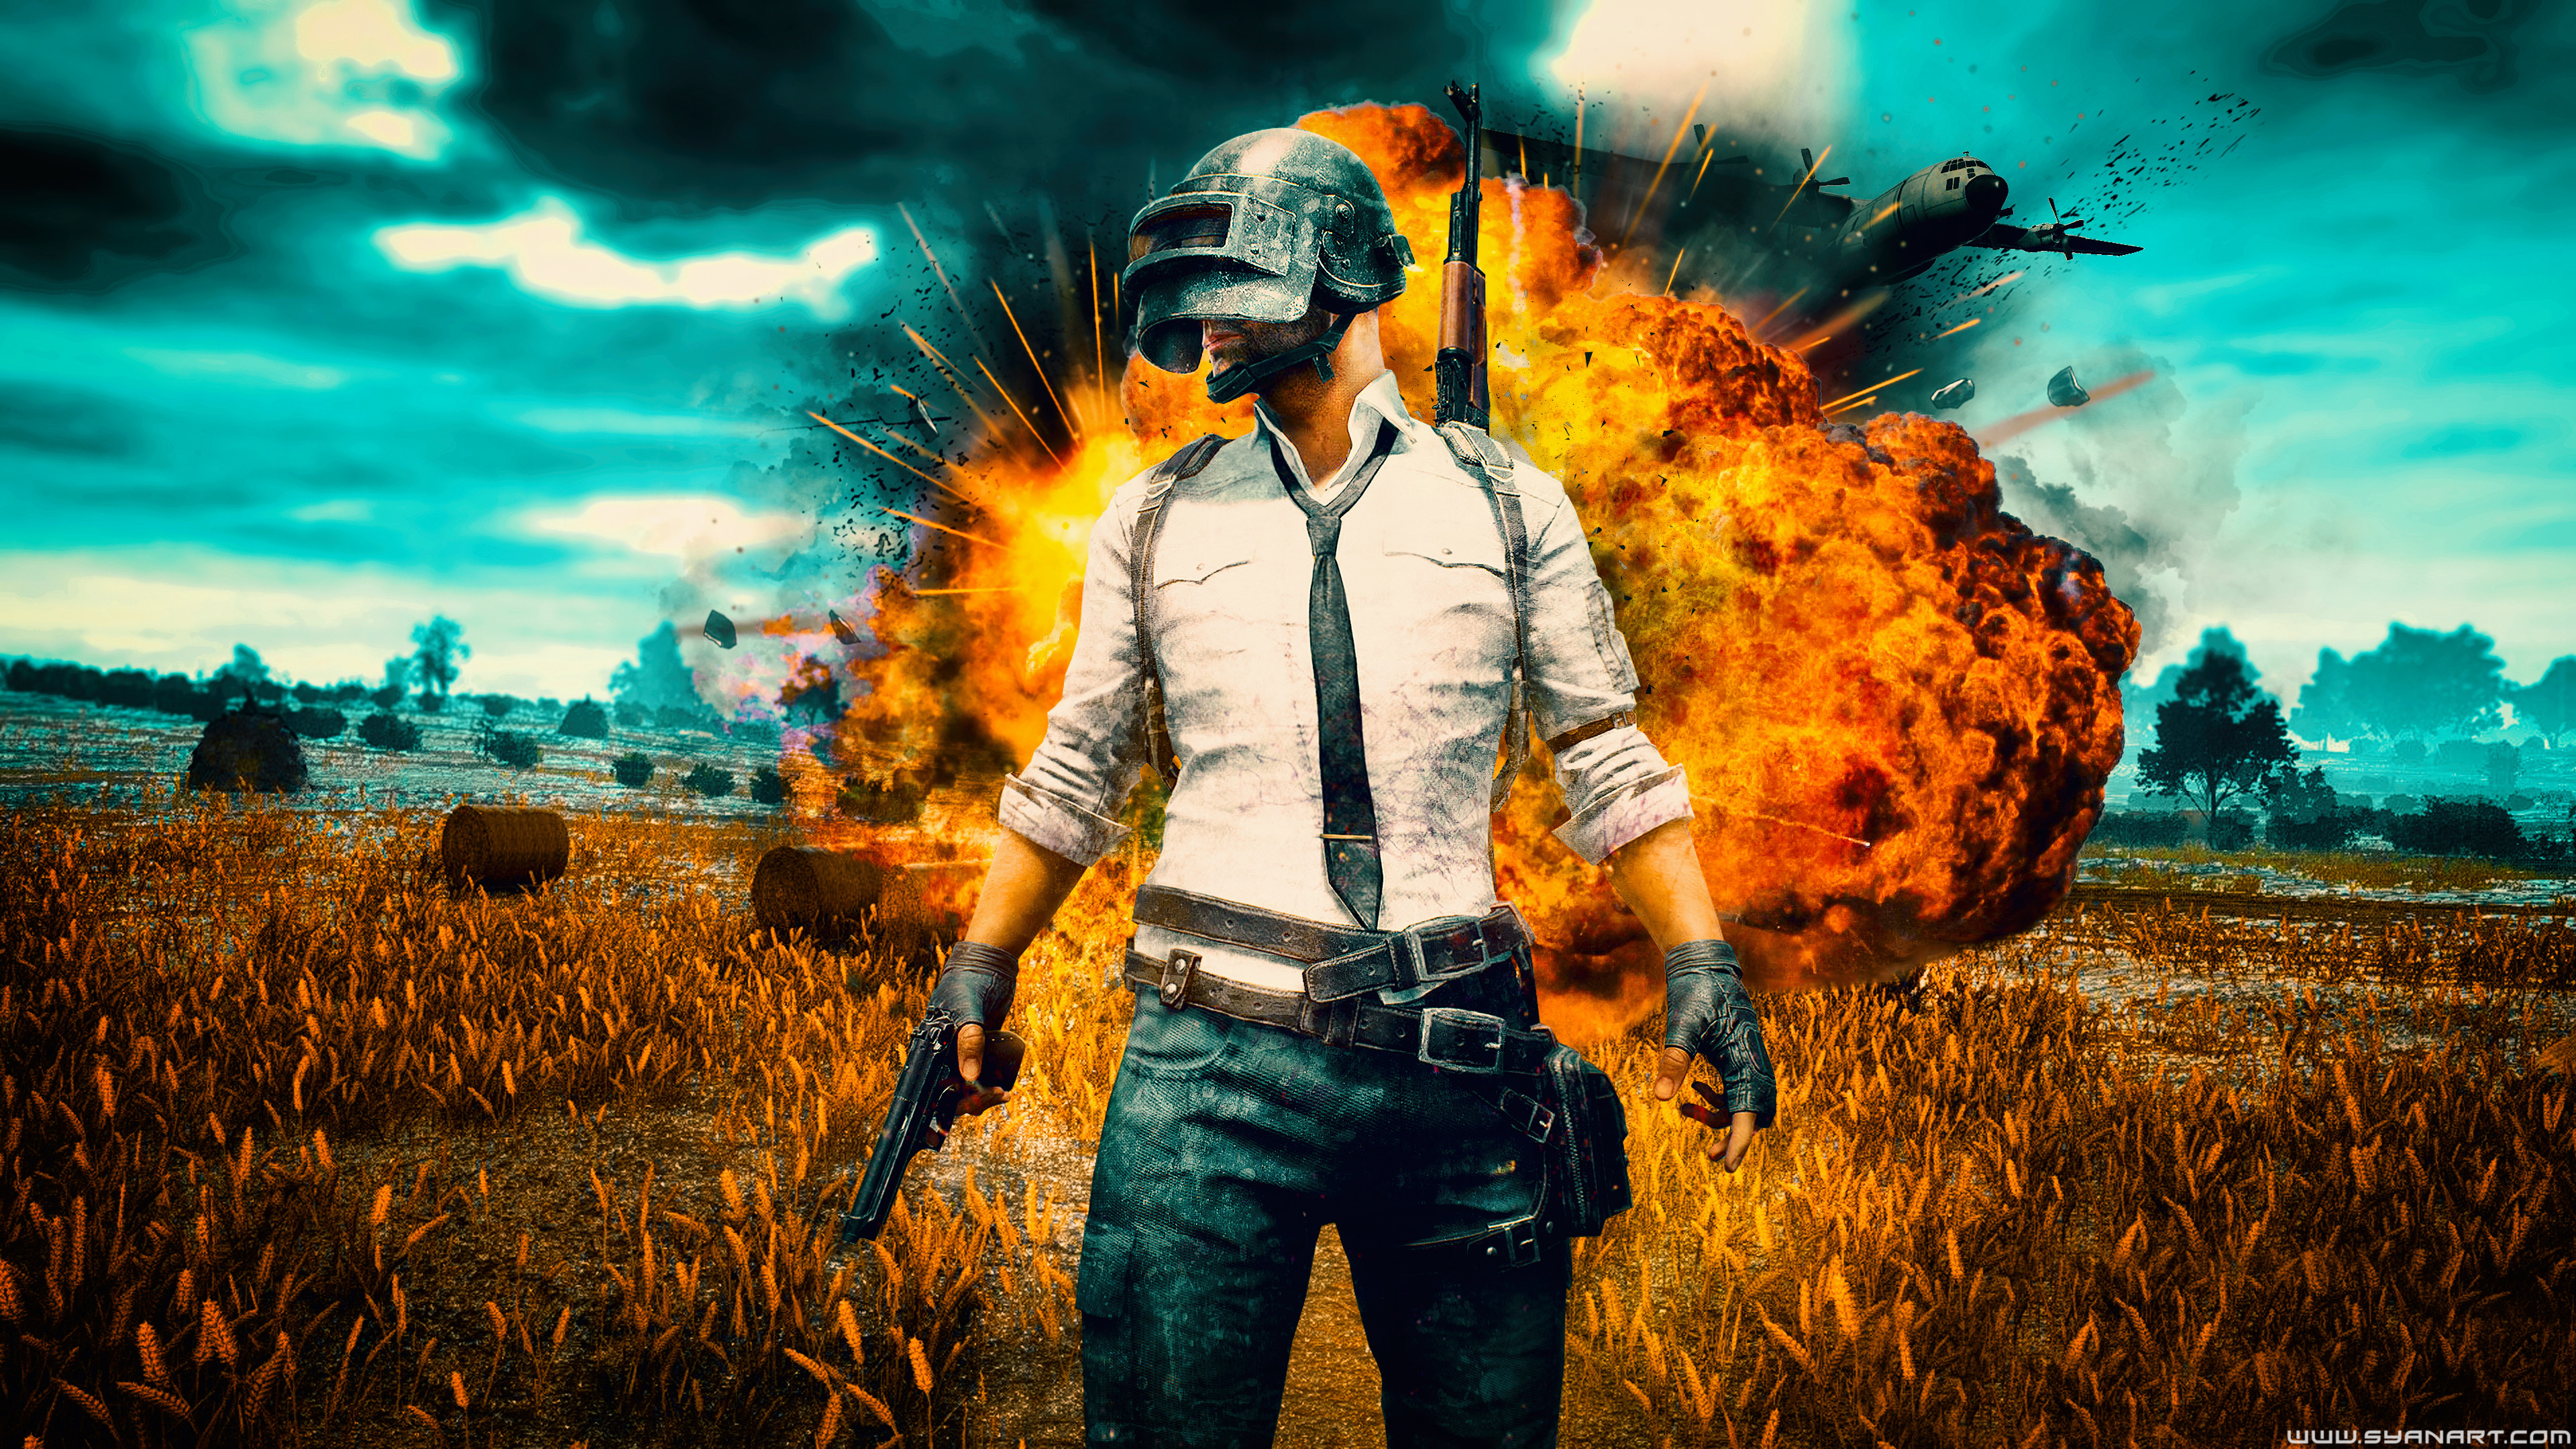 Download Pubg 1 Wallpapers To Your Cell Phone: Pub Wallpaper (57+ Images